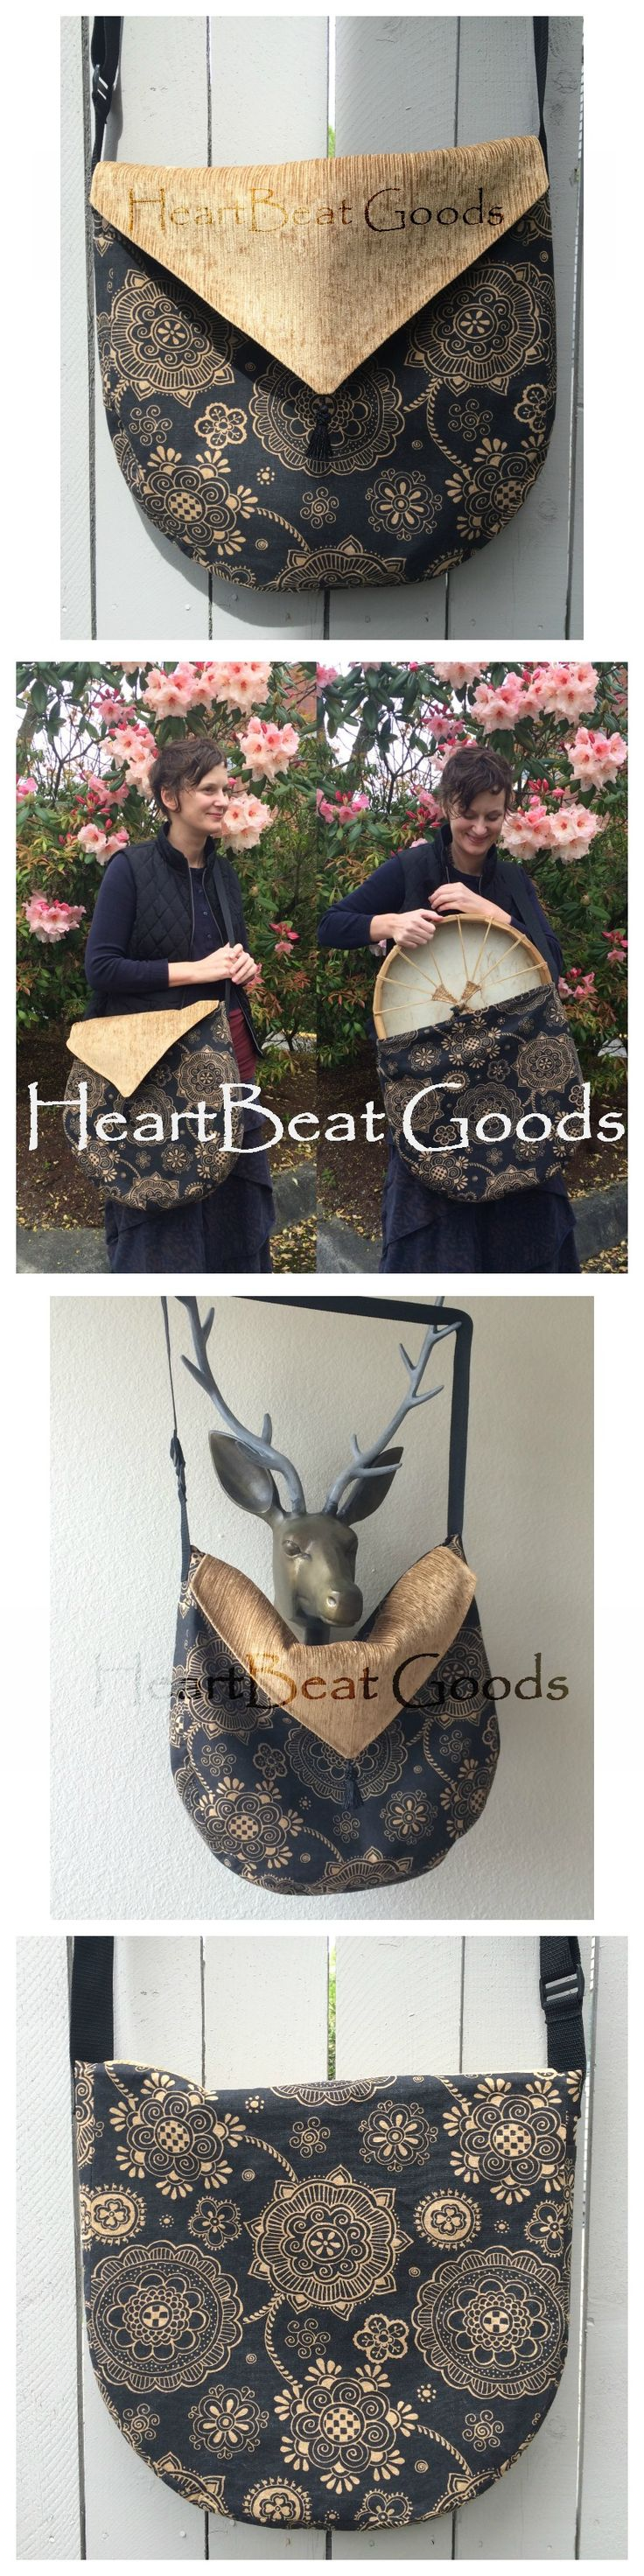 Do you have a way to carry your drum when you travel?  http://www.etsy.com/shop/HeartBeatGoods?ref=hdr_shop_menu